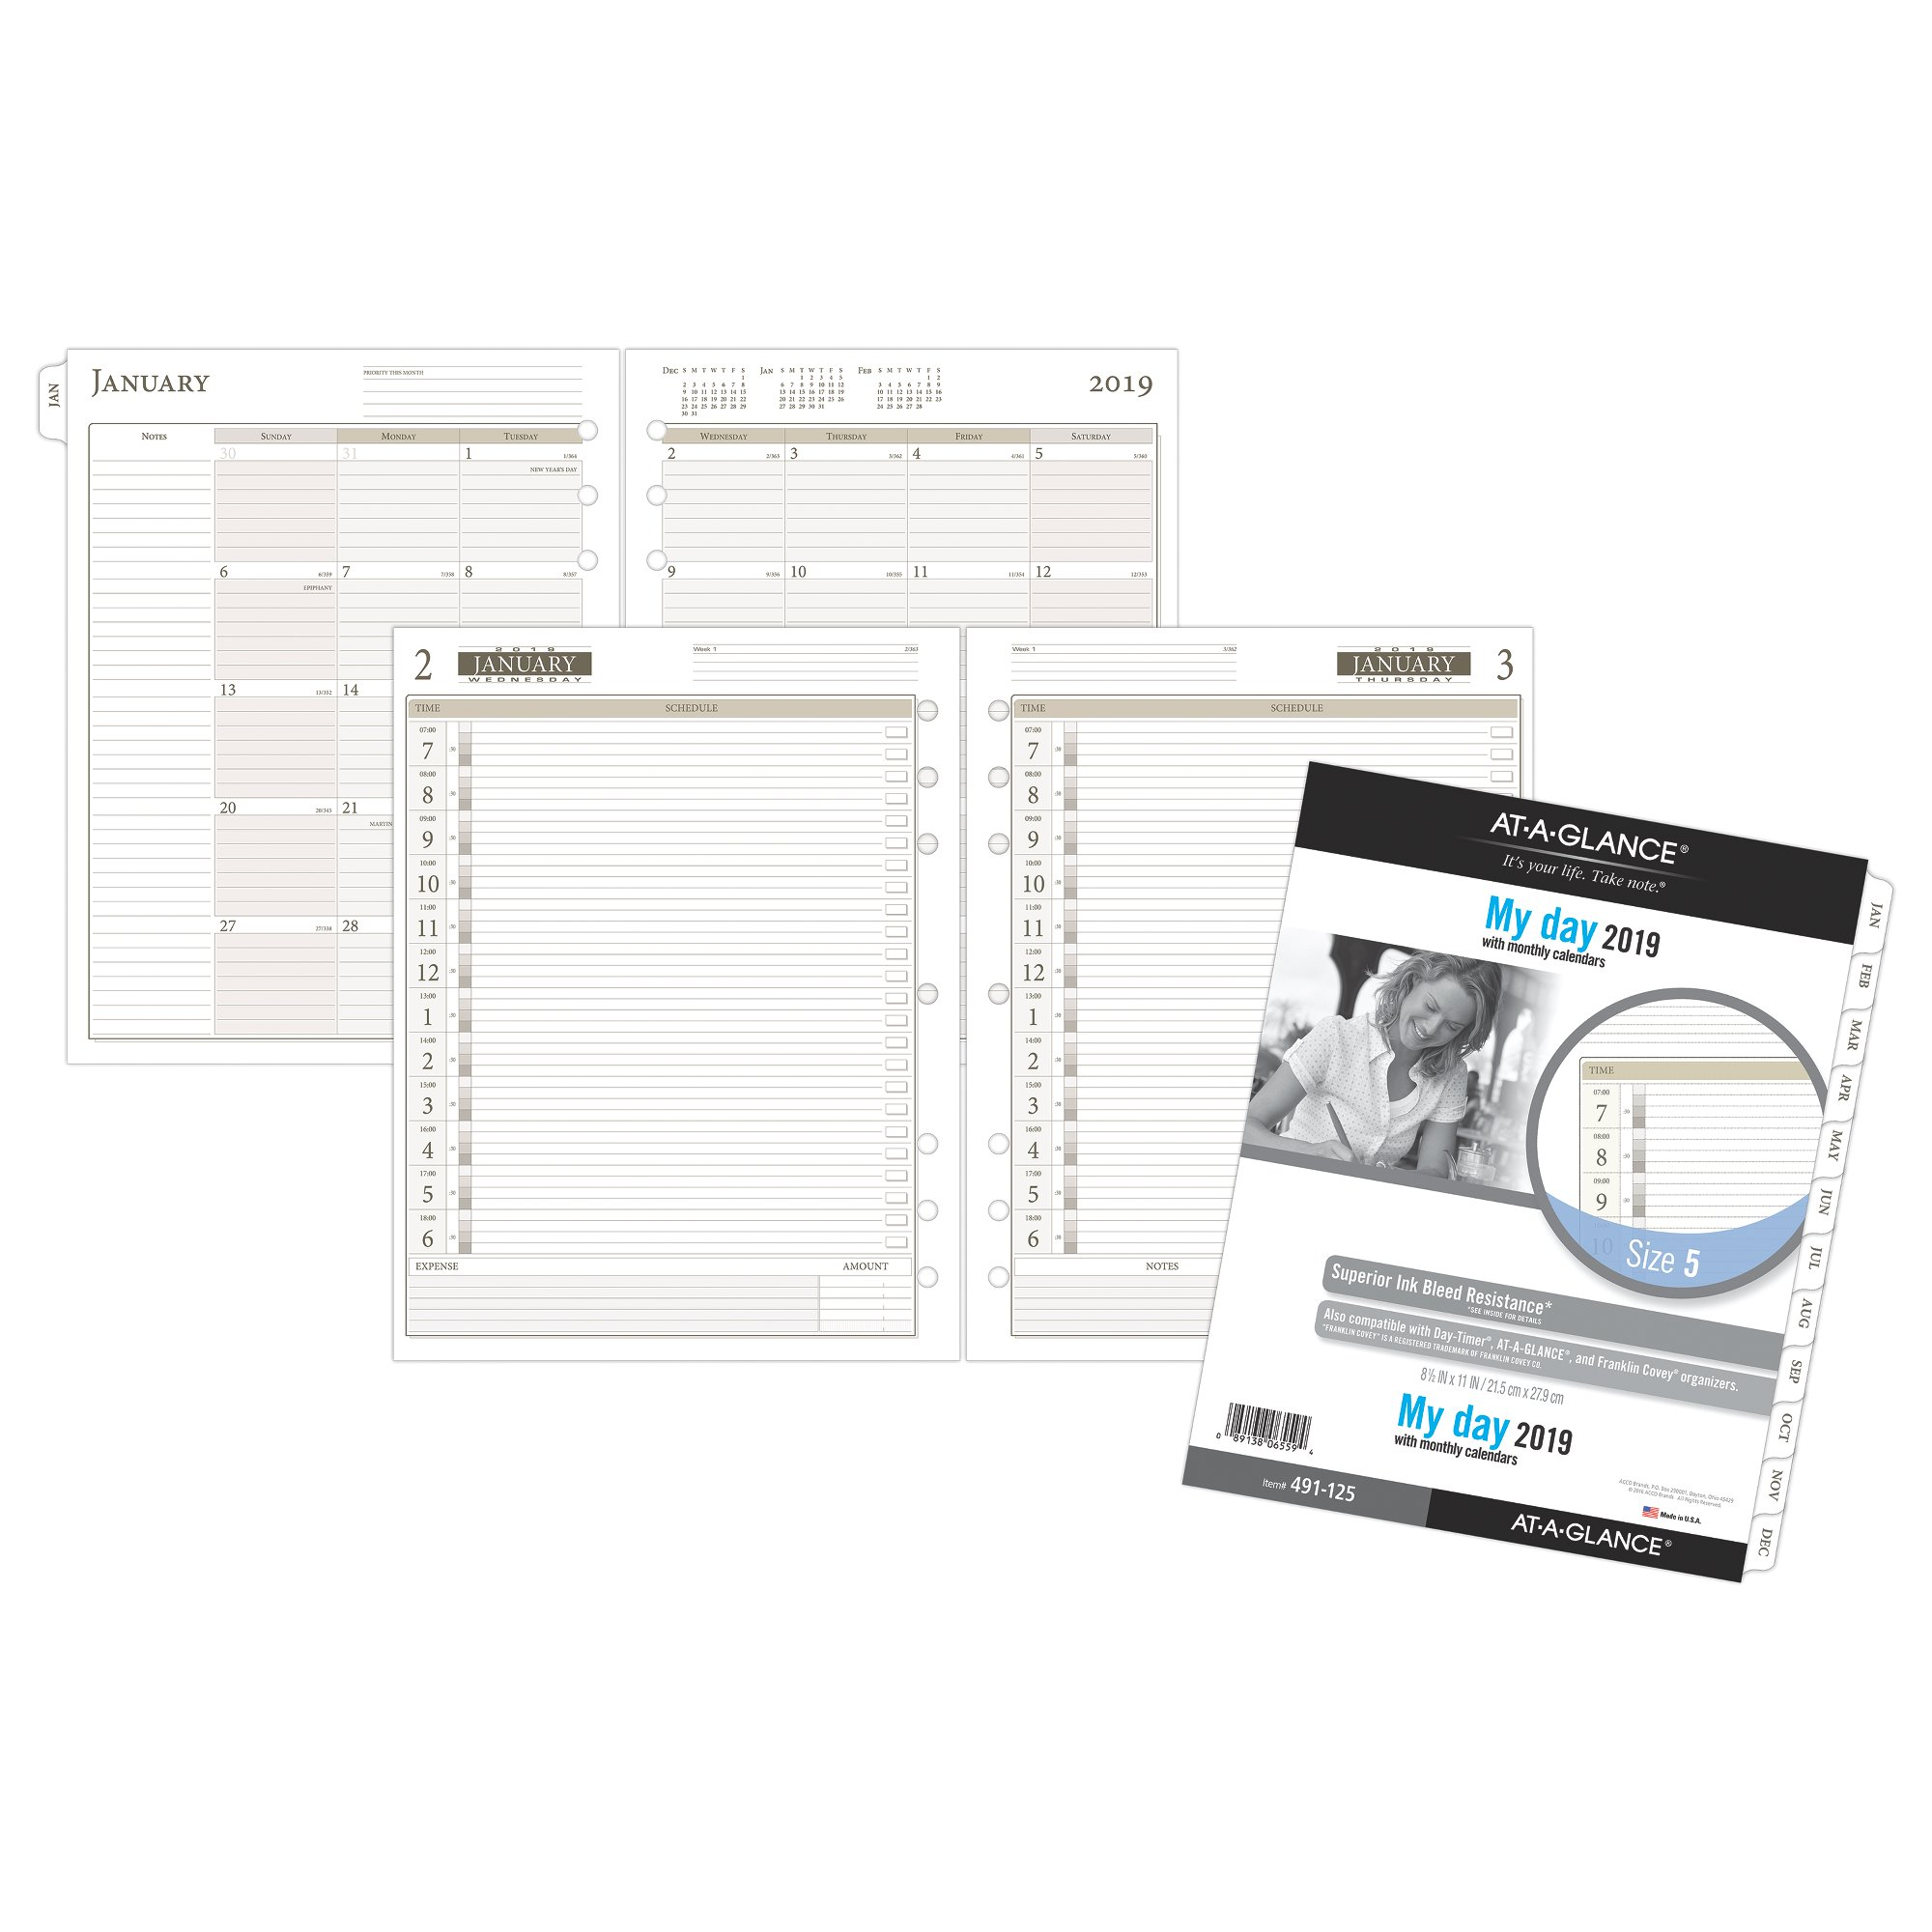 AT-A-GLANCE Day Runner 1-Page-Per-Day Planner Refill Size 5 Daily Planner by AT-A-GLANCE Day Runner